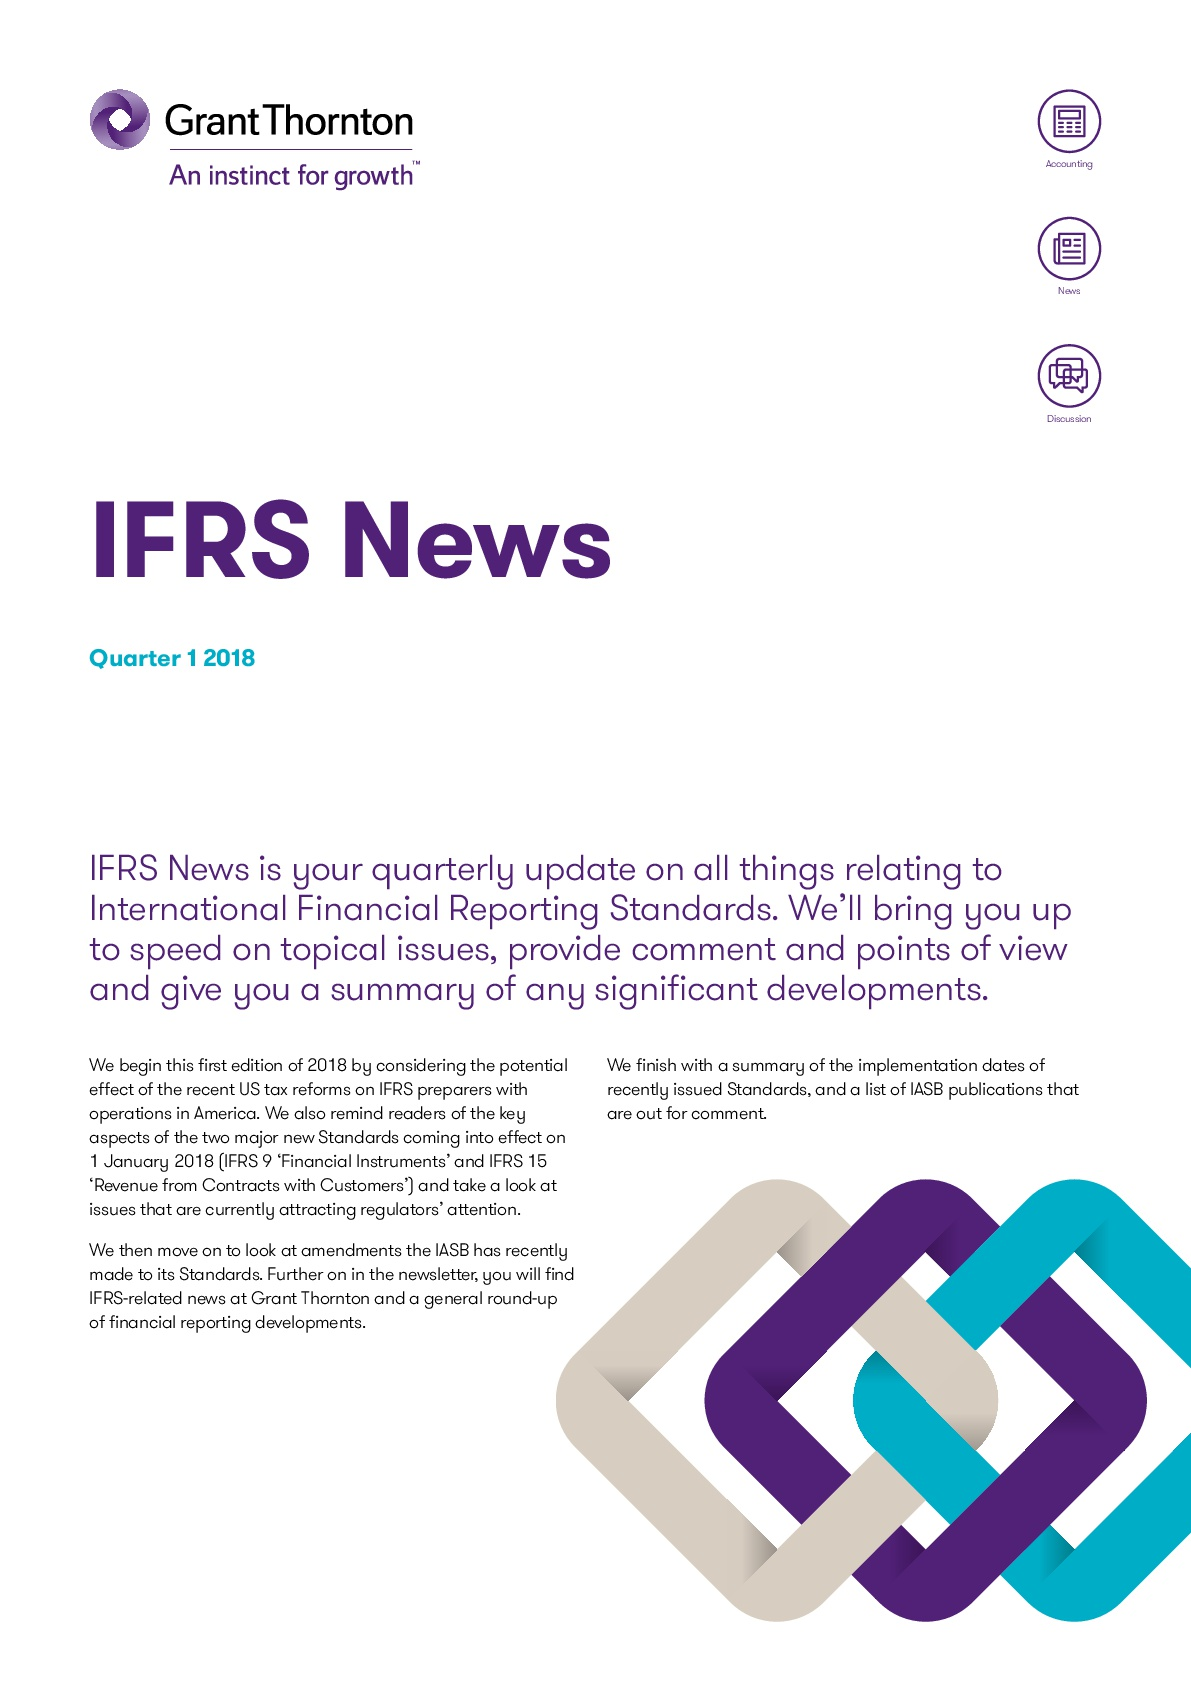 GTIL IFRS News First Quarter 2018 Edition | Grant Thornton